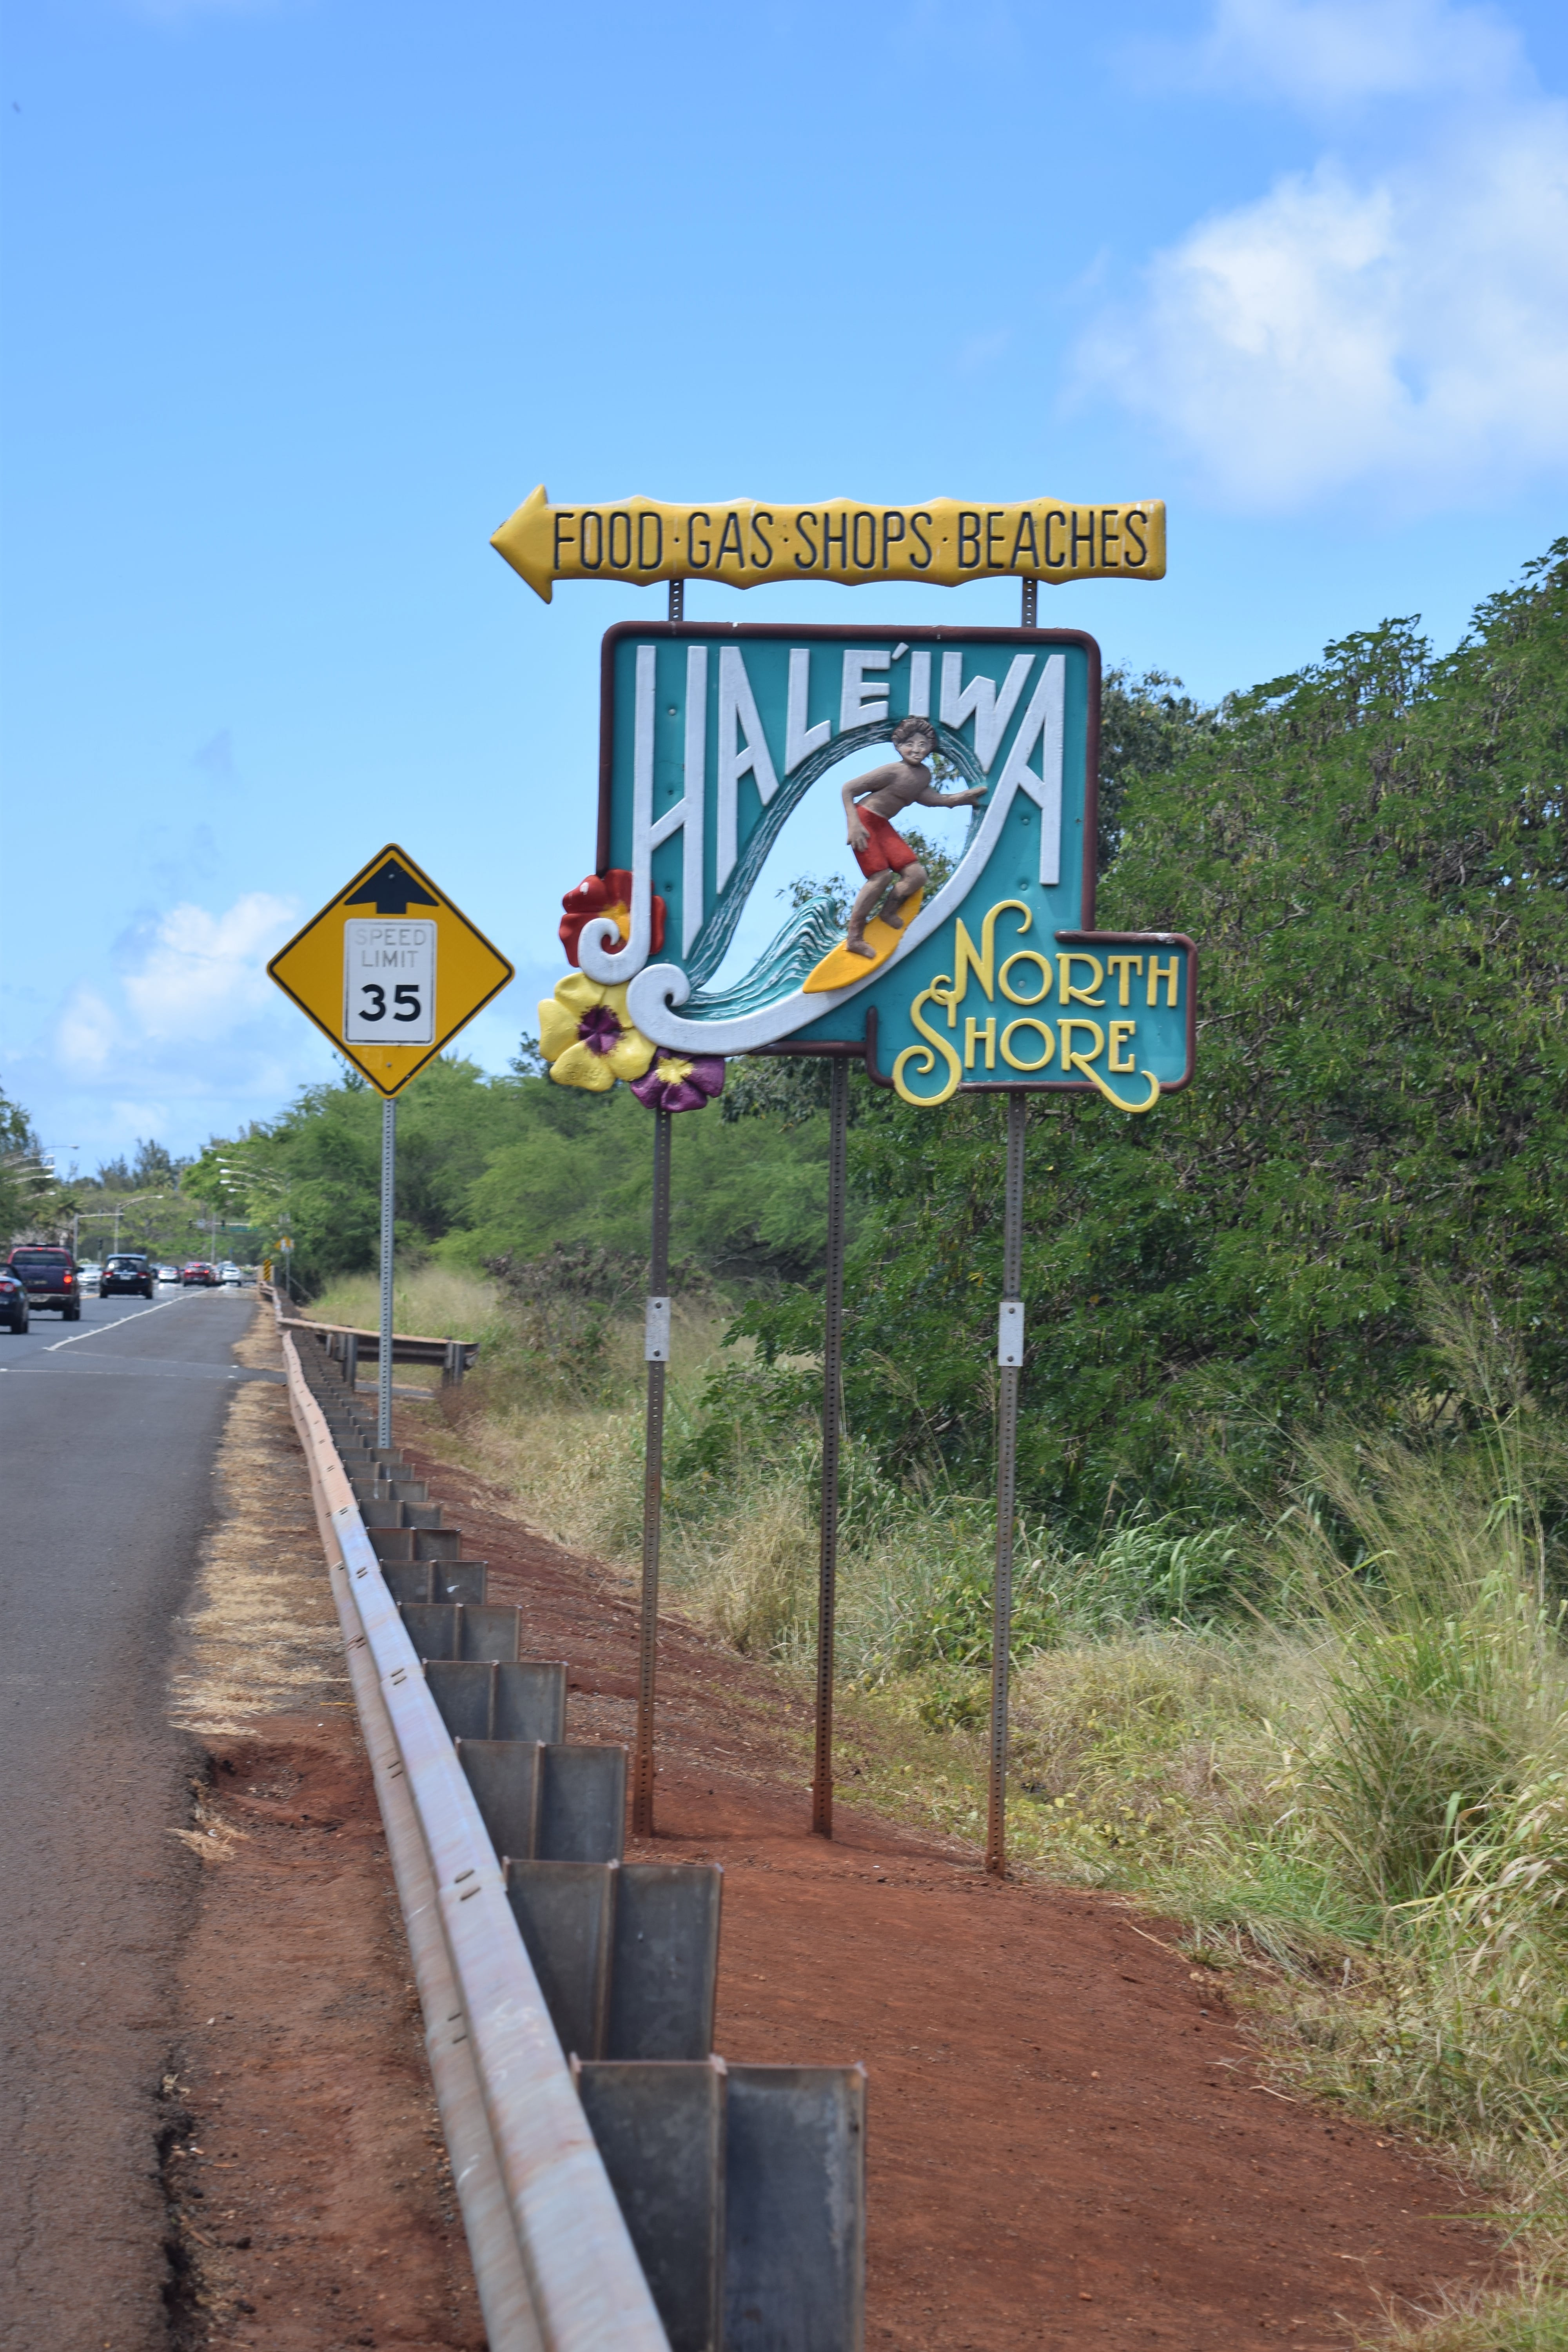 25 PHOTOS TO INSPIRE A TRIP TO HALEIWA, HAWAII - The best town on Oahu's North Shore! | Haleiwa Oahu - Haleiwa Hawaii - Haleiwa Town Oahu - Haleiwa Weather - Haleiwa Restaurants - Haleiwa Surfing - Haleiwa Beaches - Haleiwa Vacation Planning - What to do in Haleiwa - #oahu #haleiwa #hawaii #travelblog